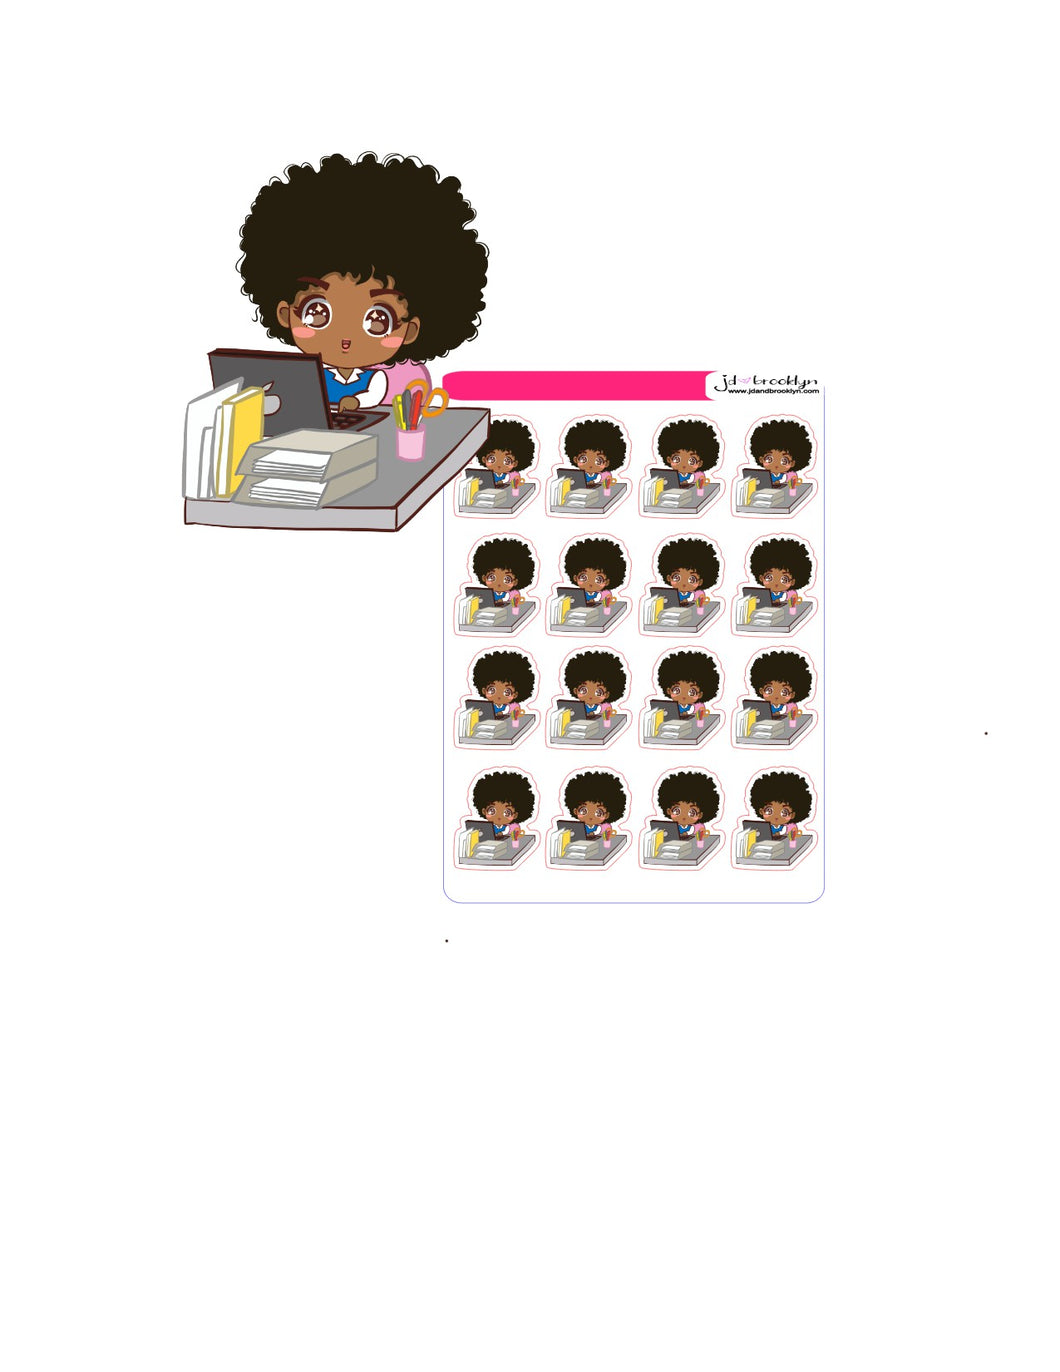 Doll sitting at desk with laptop chibi style sticker sheet